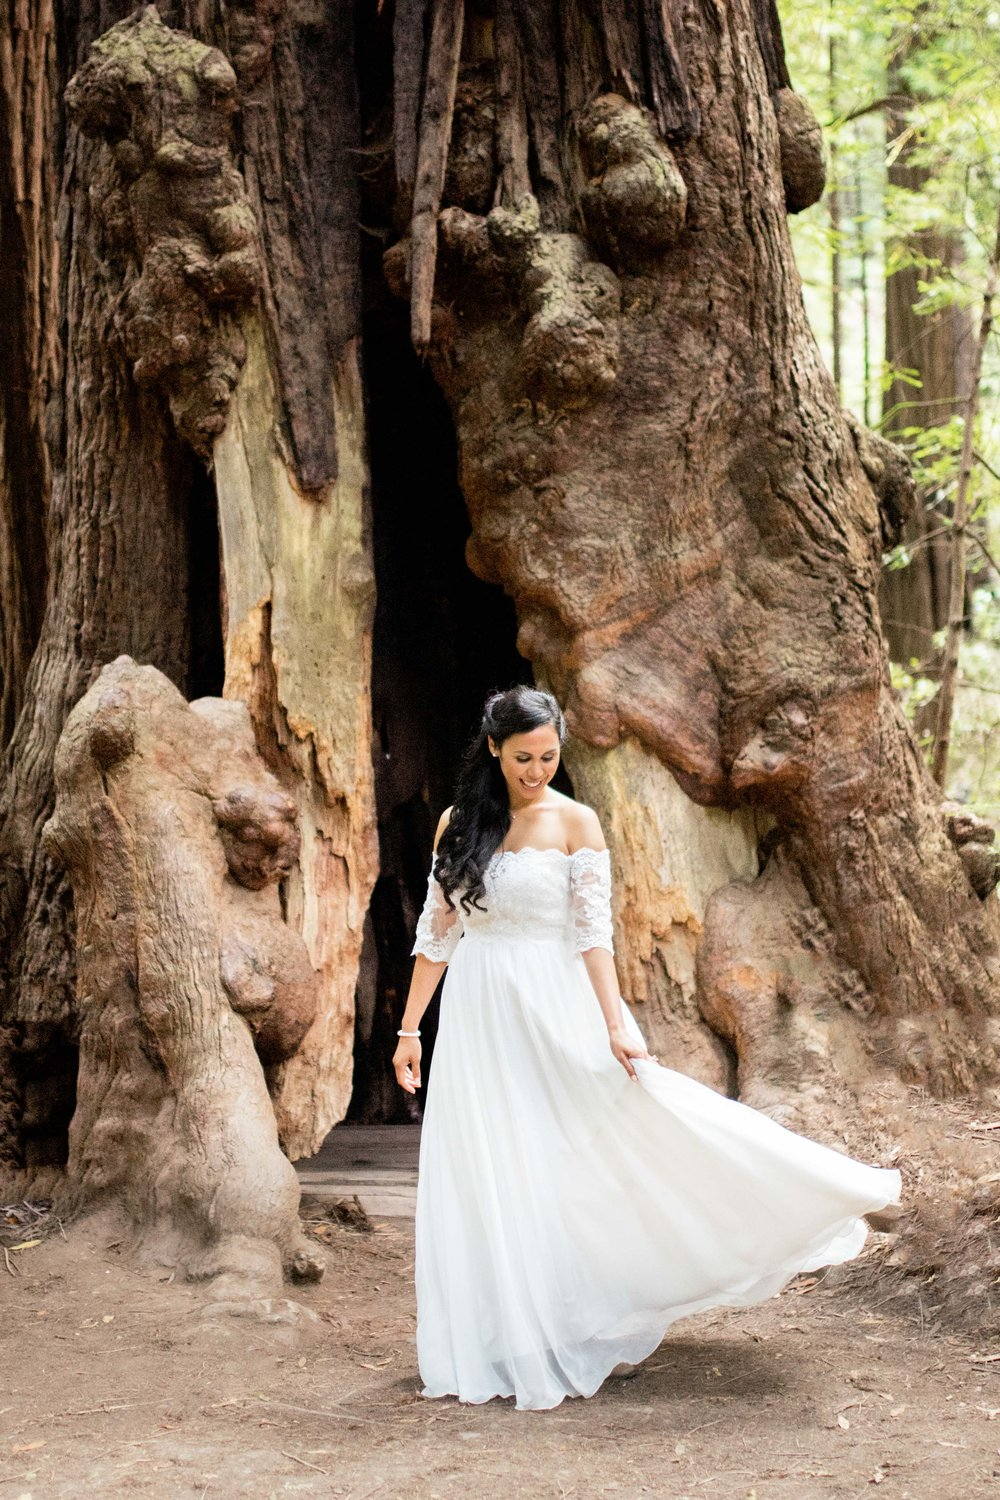 007_Krysten-Crebin-Muir-Woods-Elopement-Wedding-Photographer.jpg